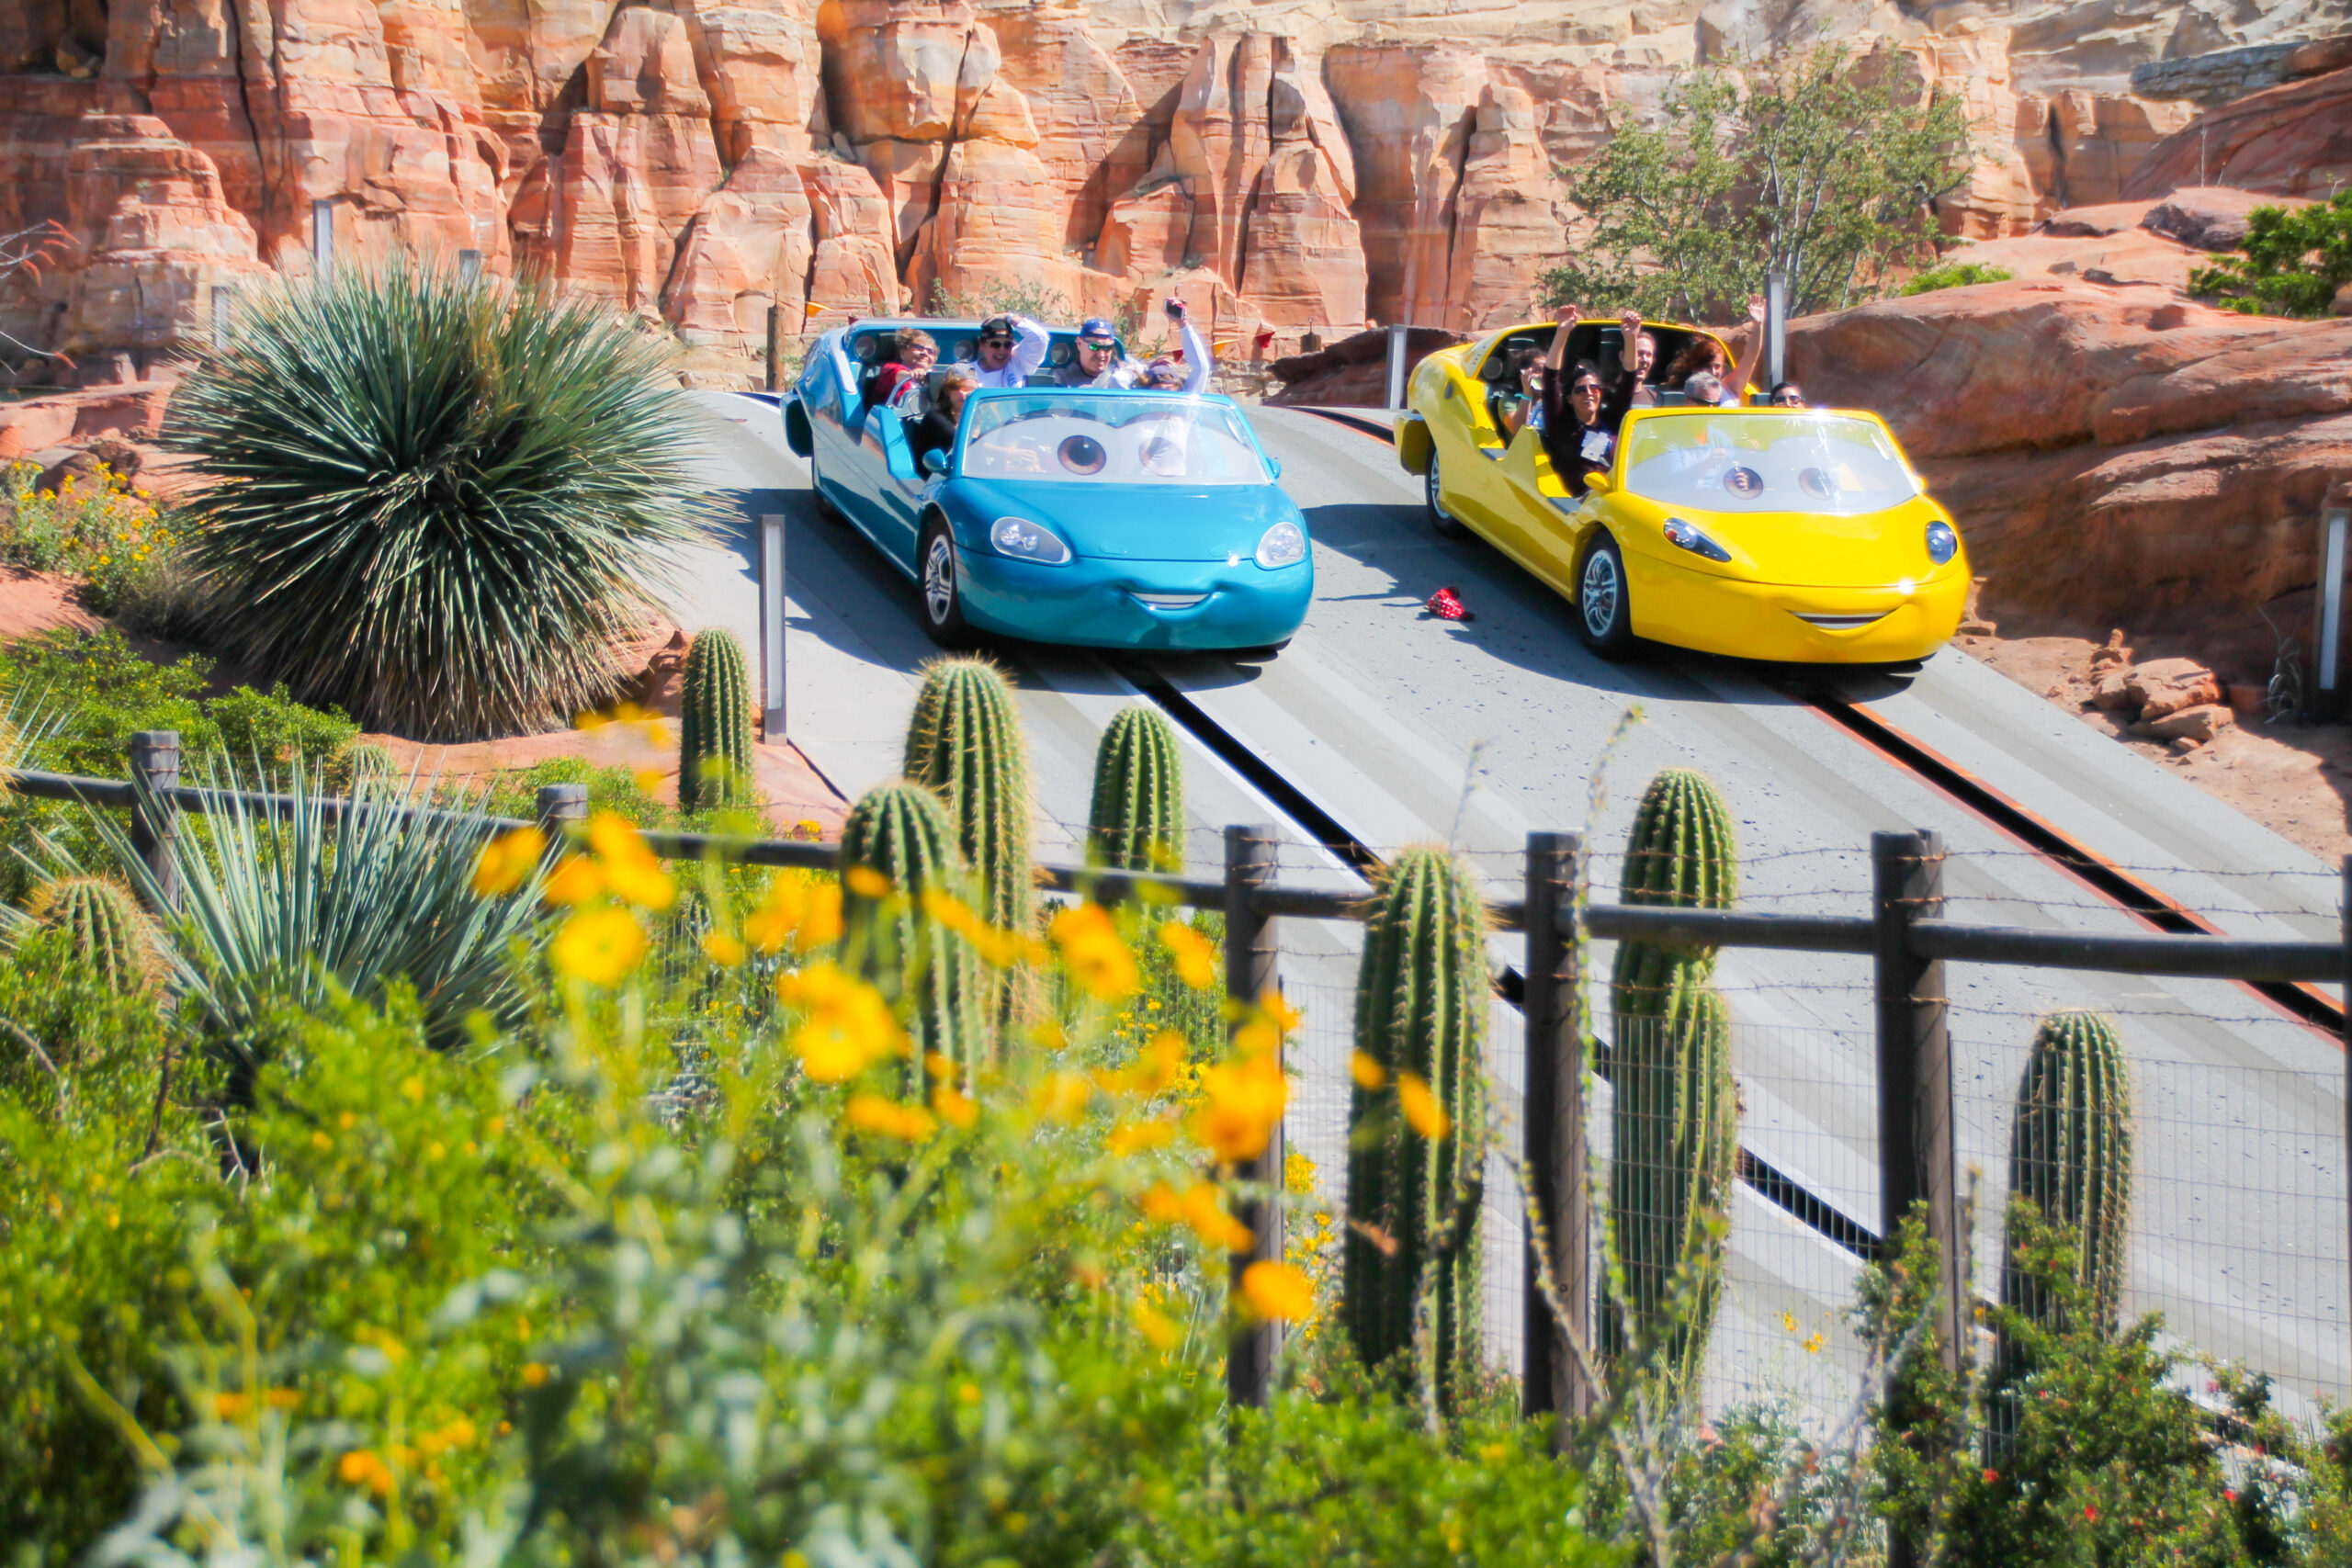 Radiator Springs Racers at Disneyland in April